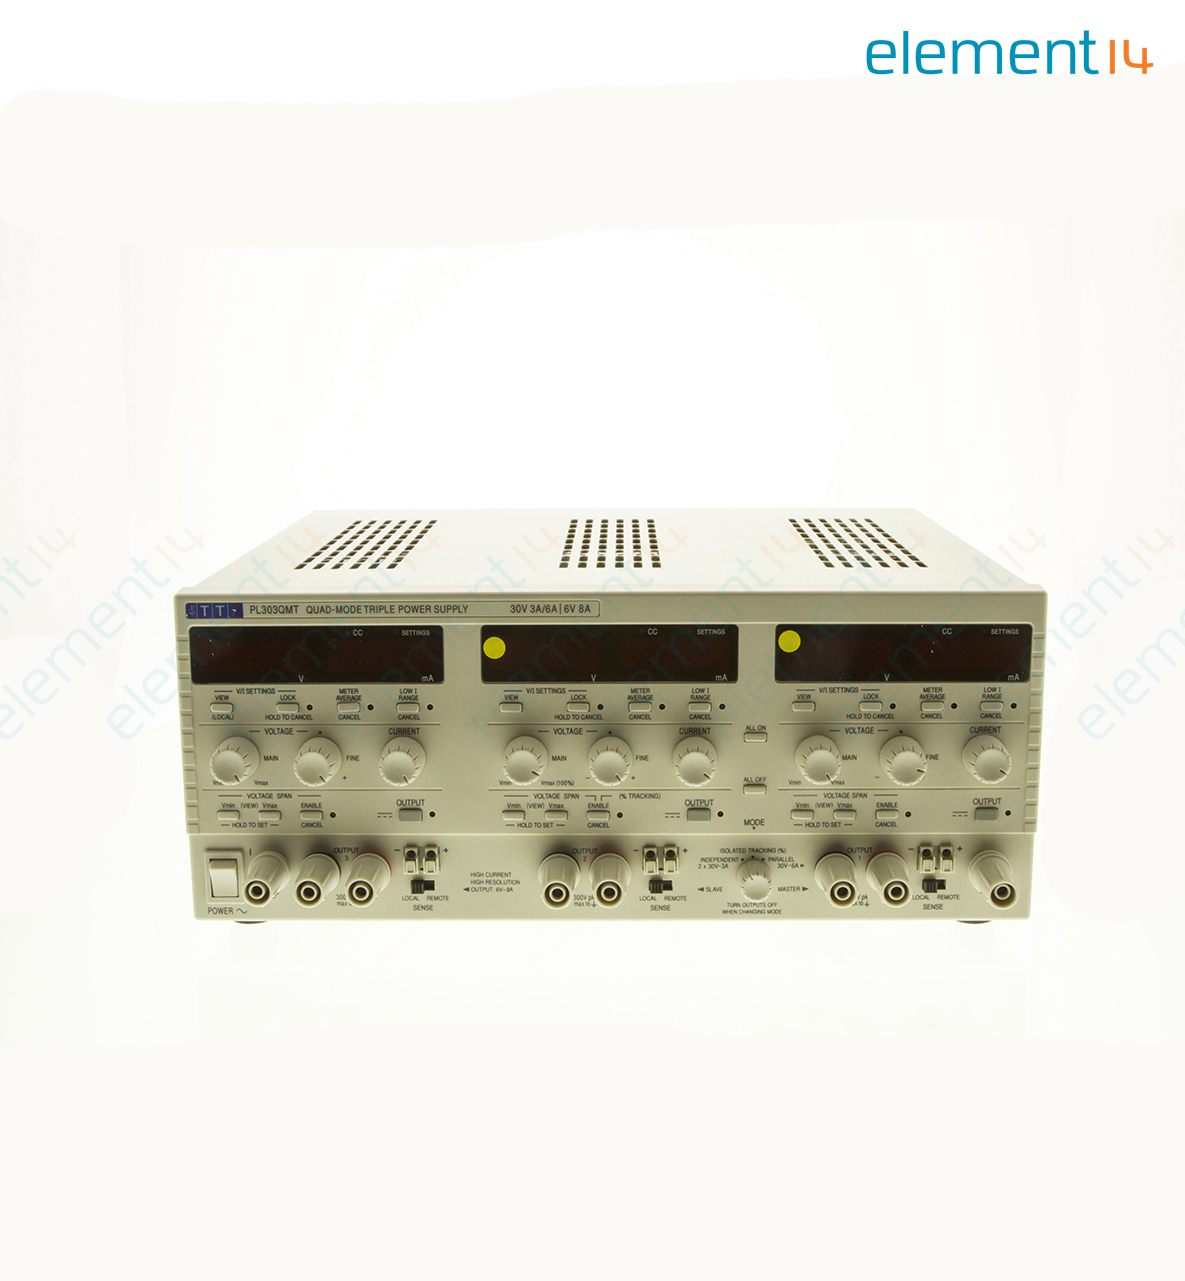 Pl303qmt Aim Tti Instruments Bench Power Supply Linear Regulated Wireless Testing A Pt2262based Remote Control Element14 Add To Compare